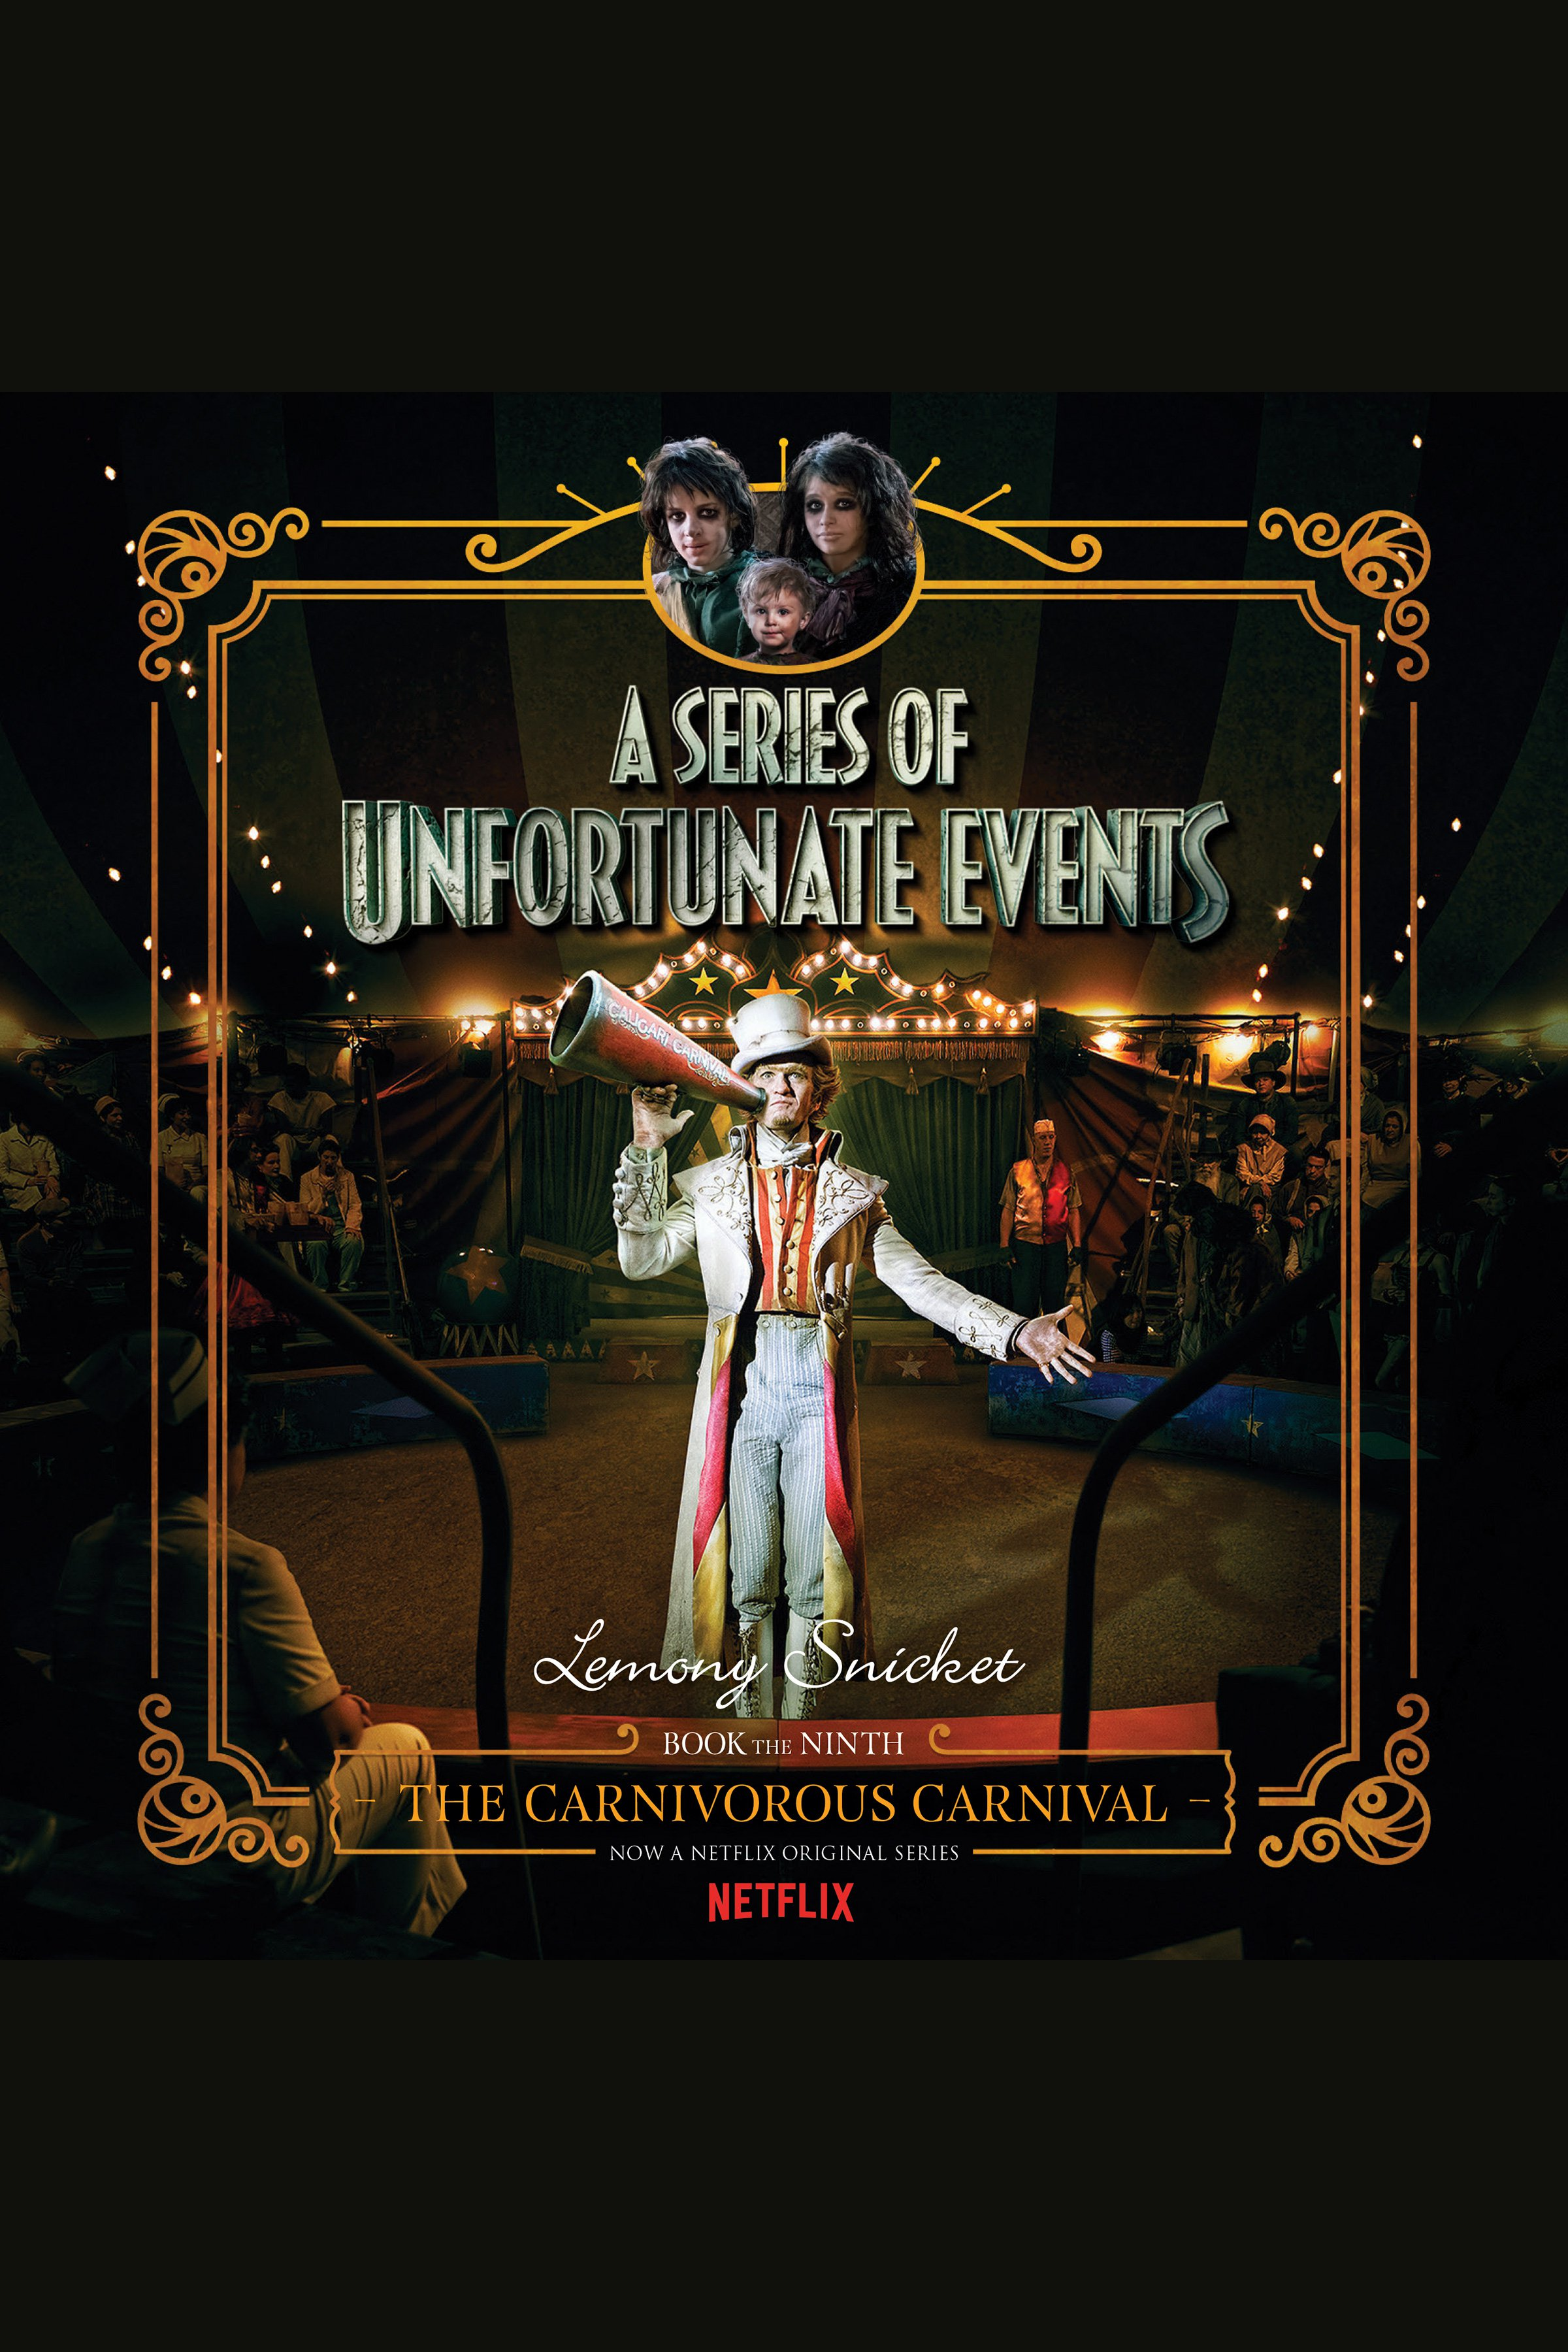 The Carnivorous Carnival A Series of Unfortunate Events #9